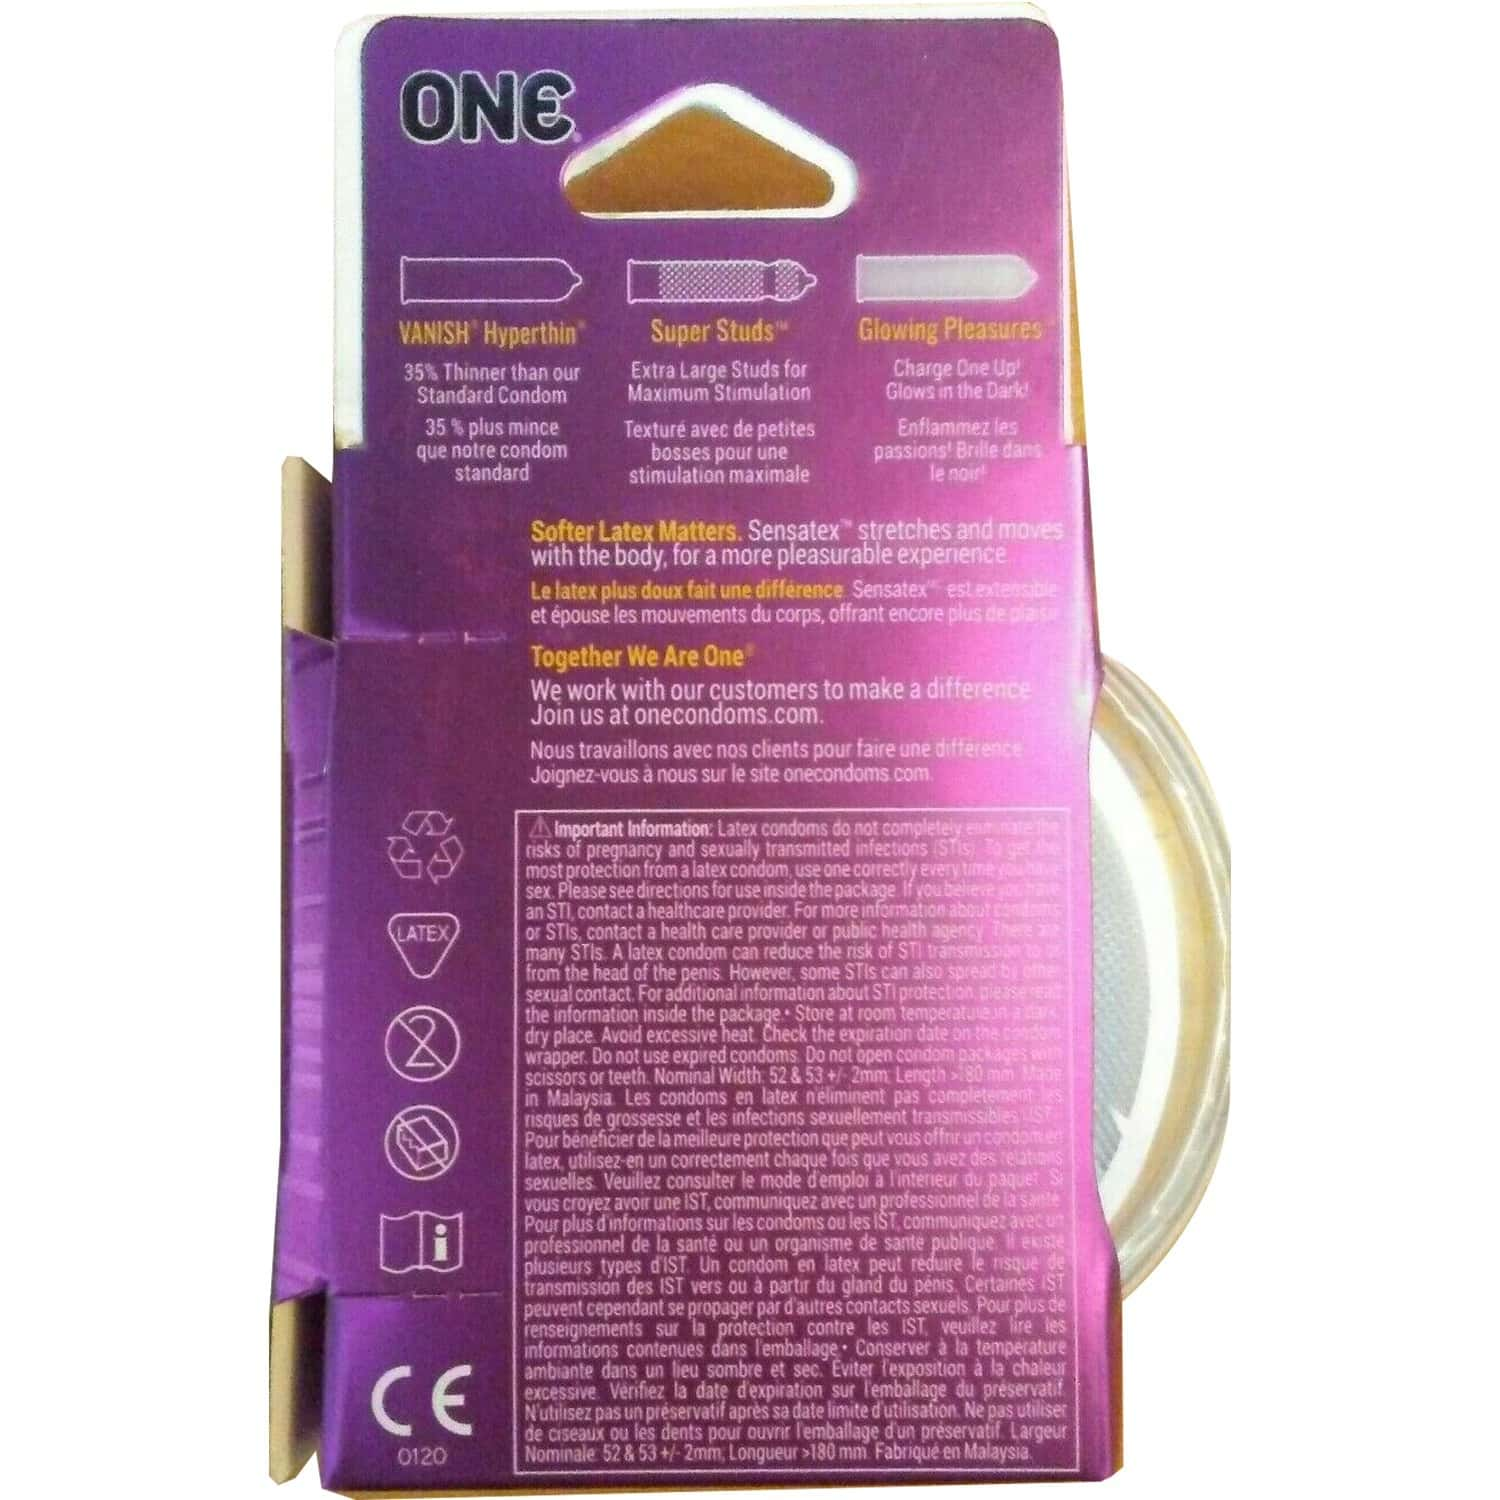 One Mixed Pleasures Unique Condoms From Usa- Pack Of 3